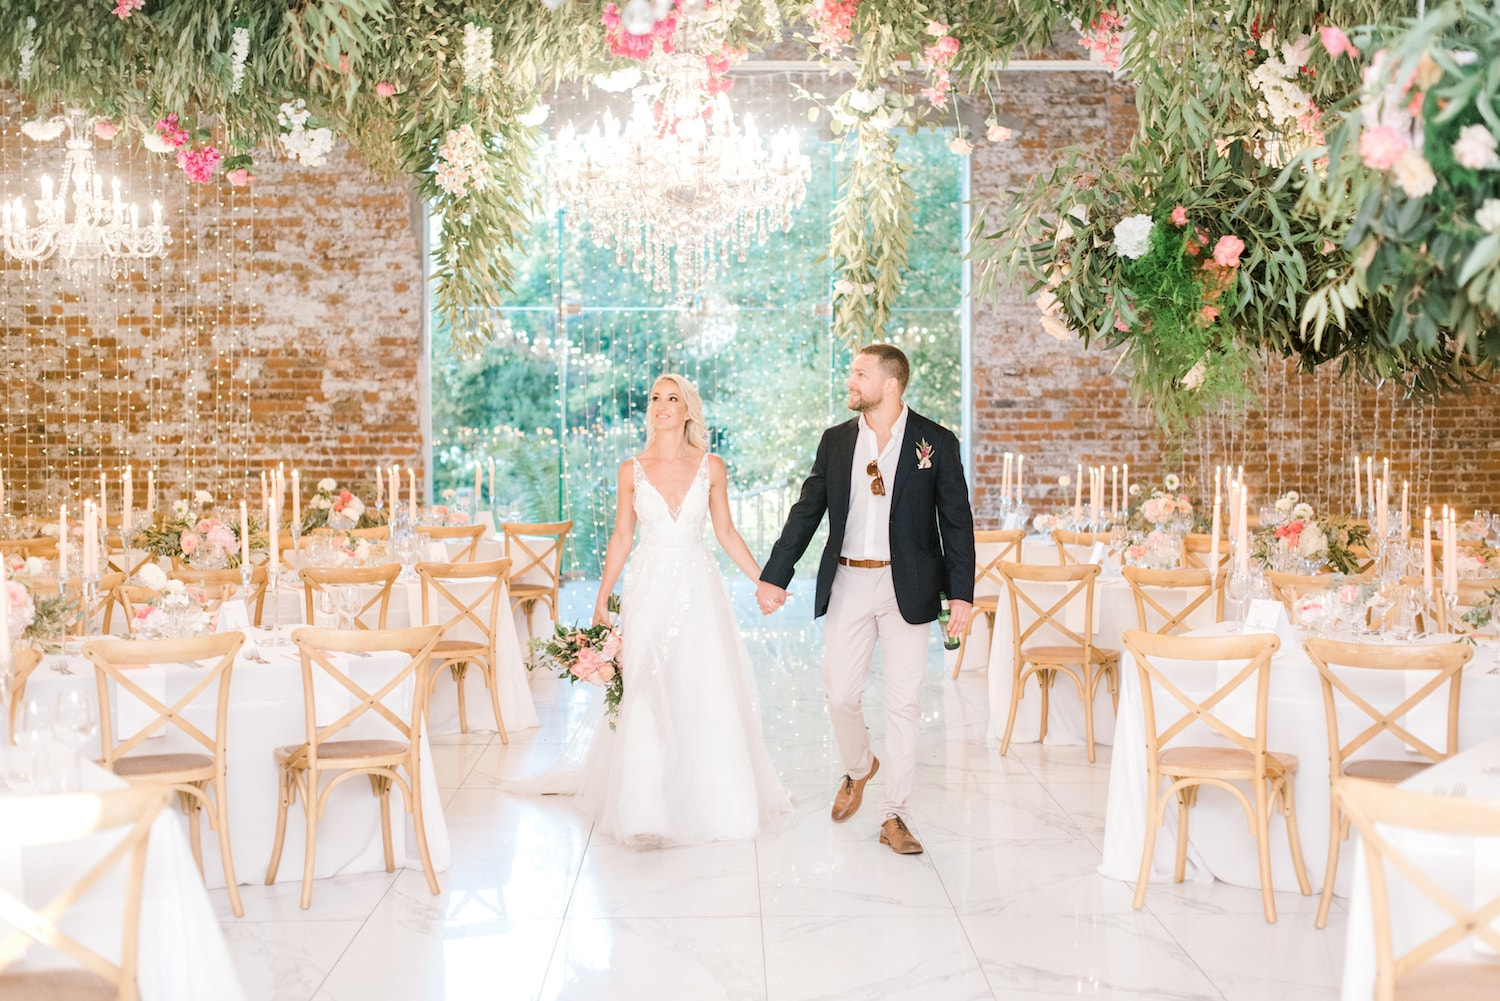 WEDDING VENUE TOURS: BEFORE, DURING AND AFTER